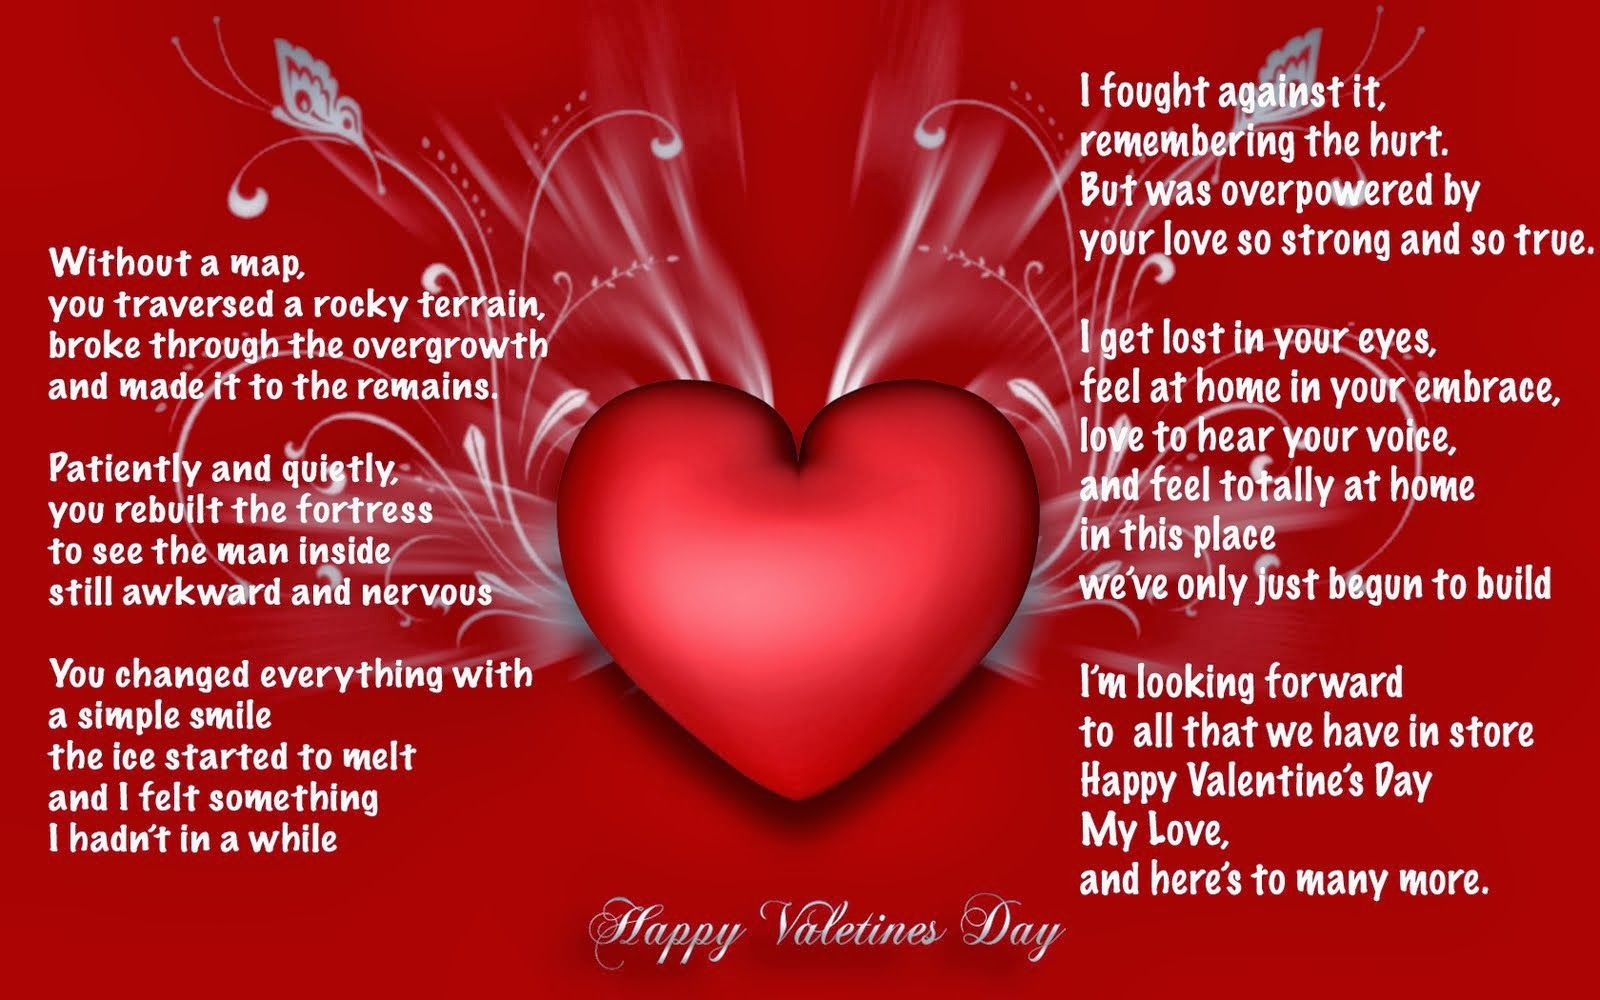 valentines day sayings quotes cheesy cute funny 2014 | valentines ...